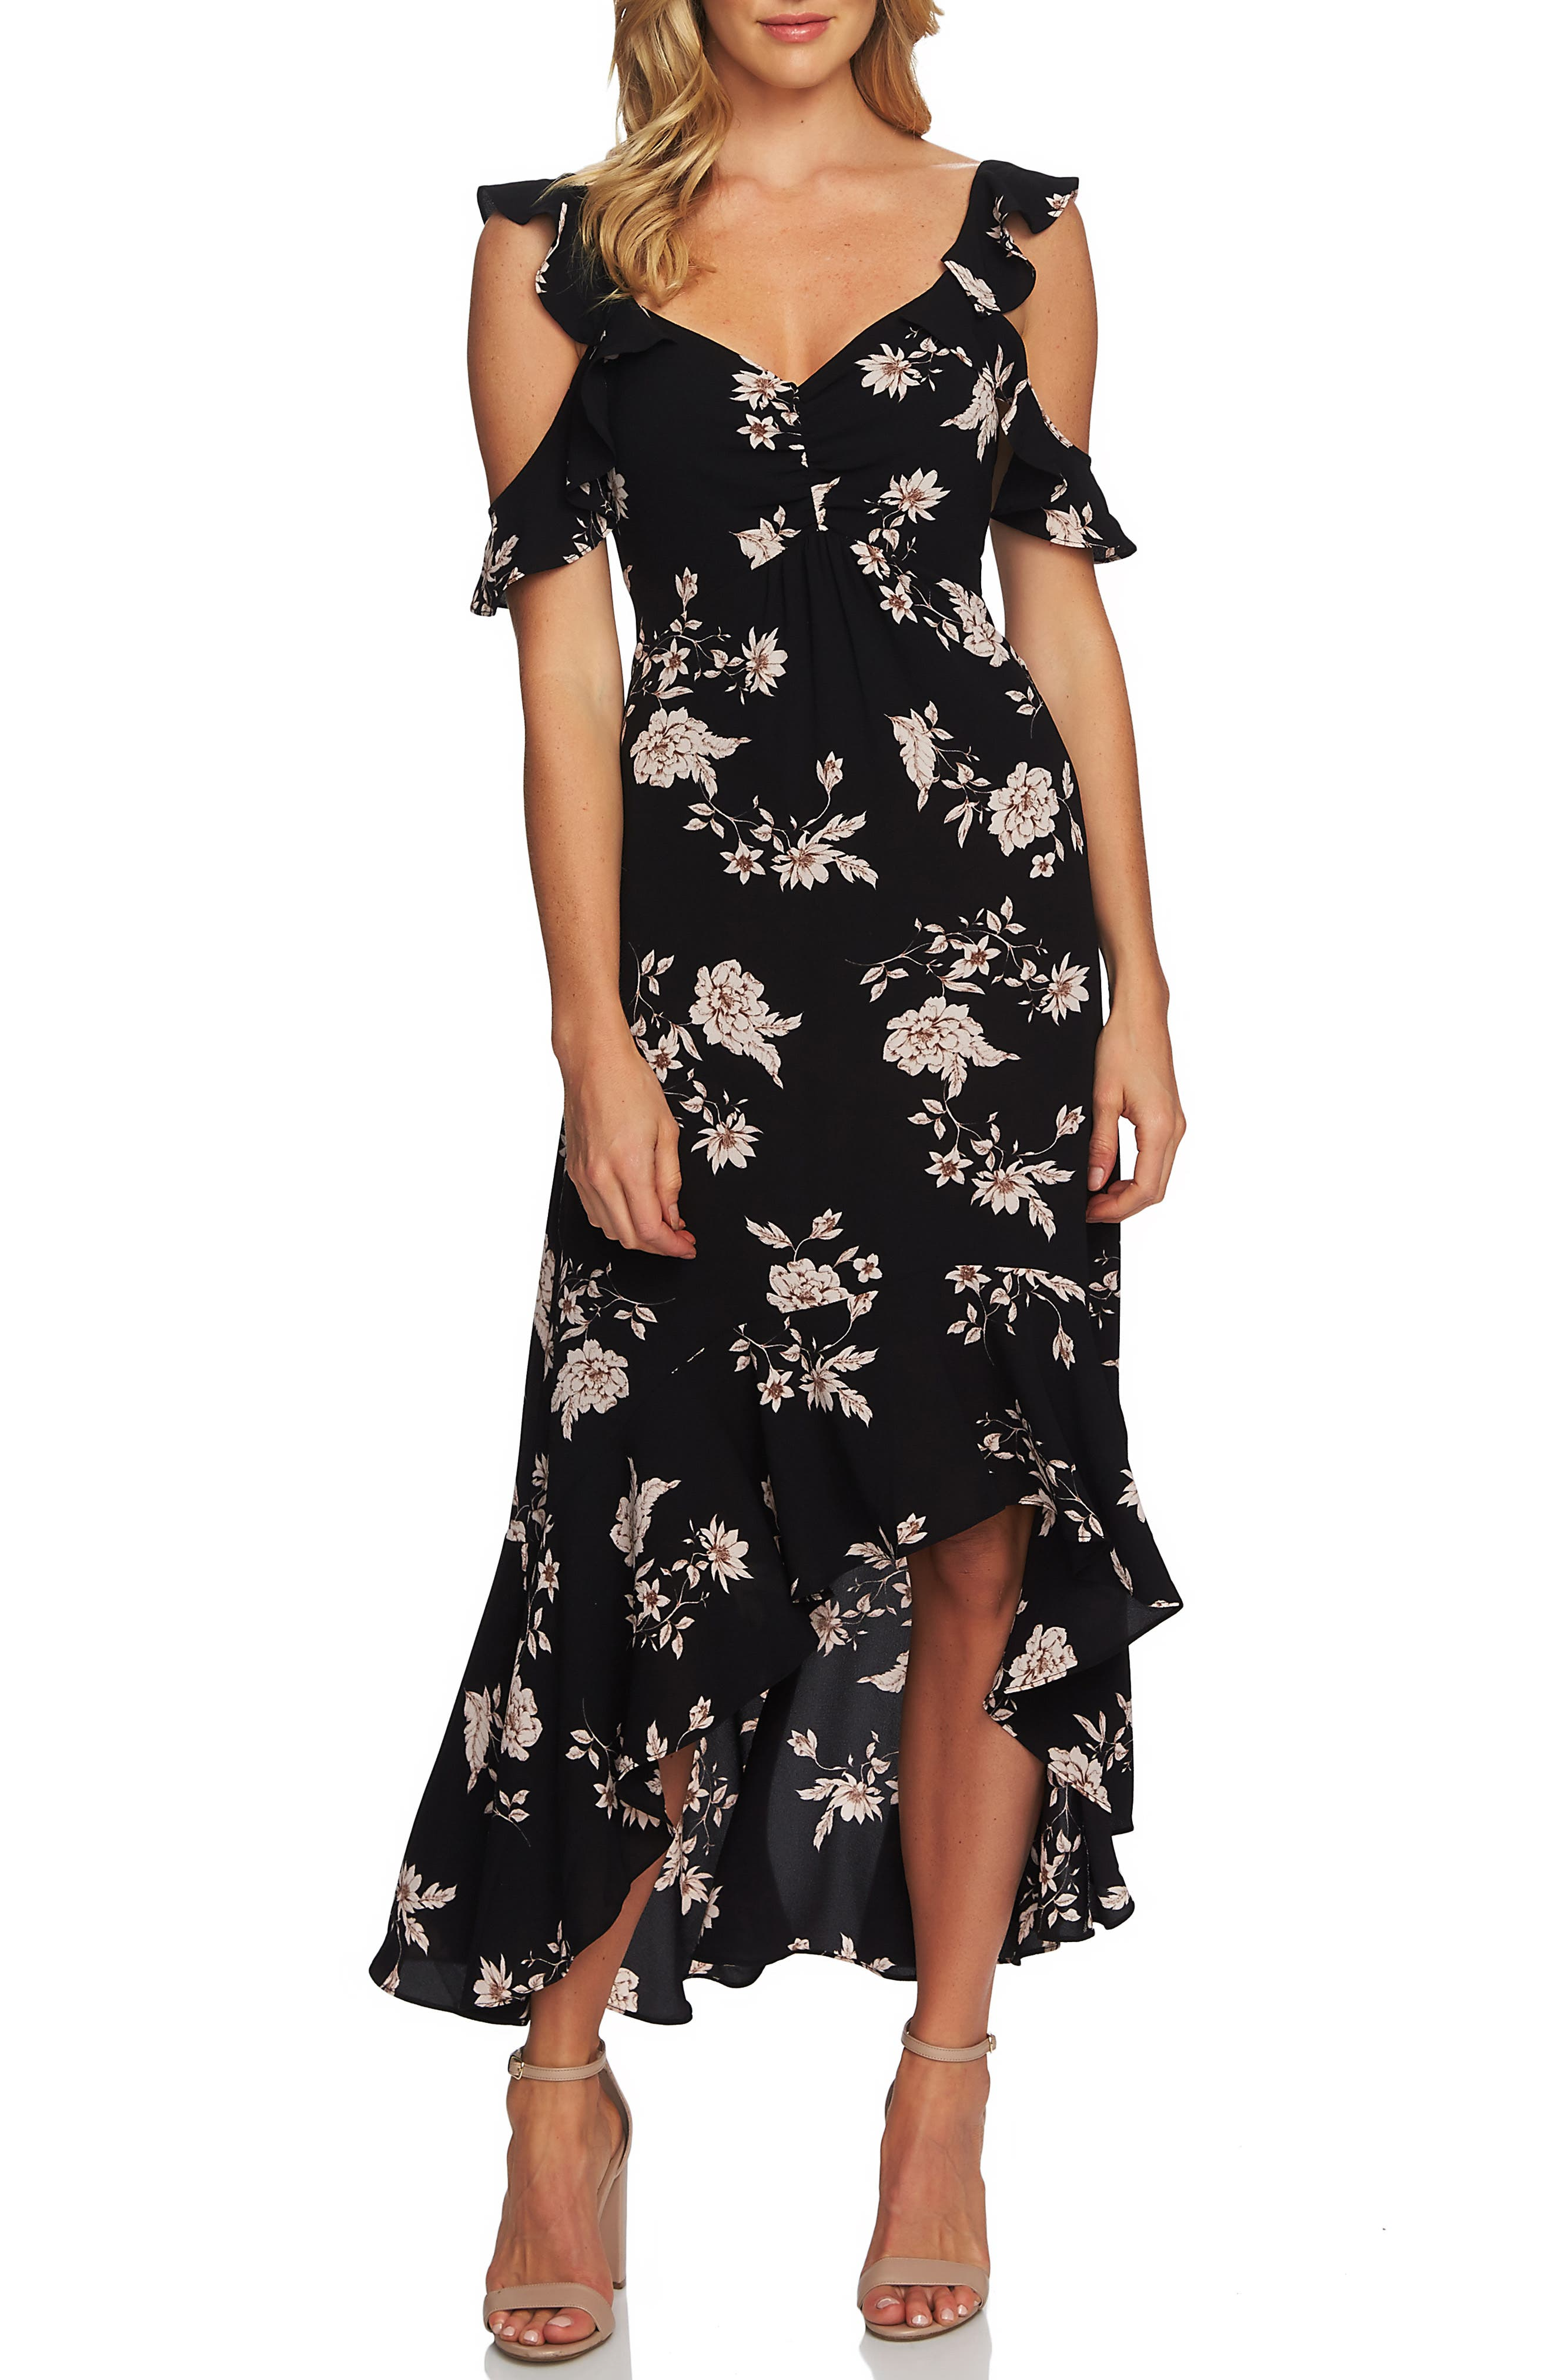 Cece Etched Floral High/low Midi Dress, Black